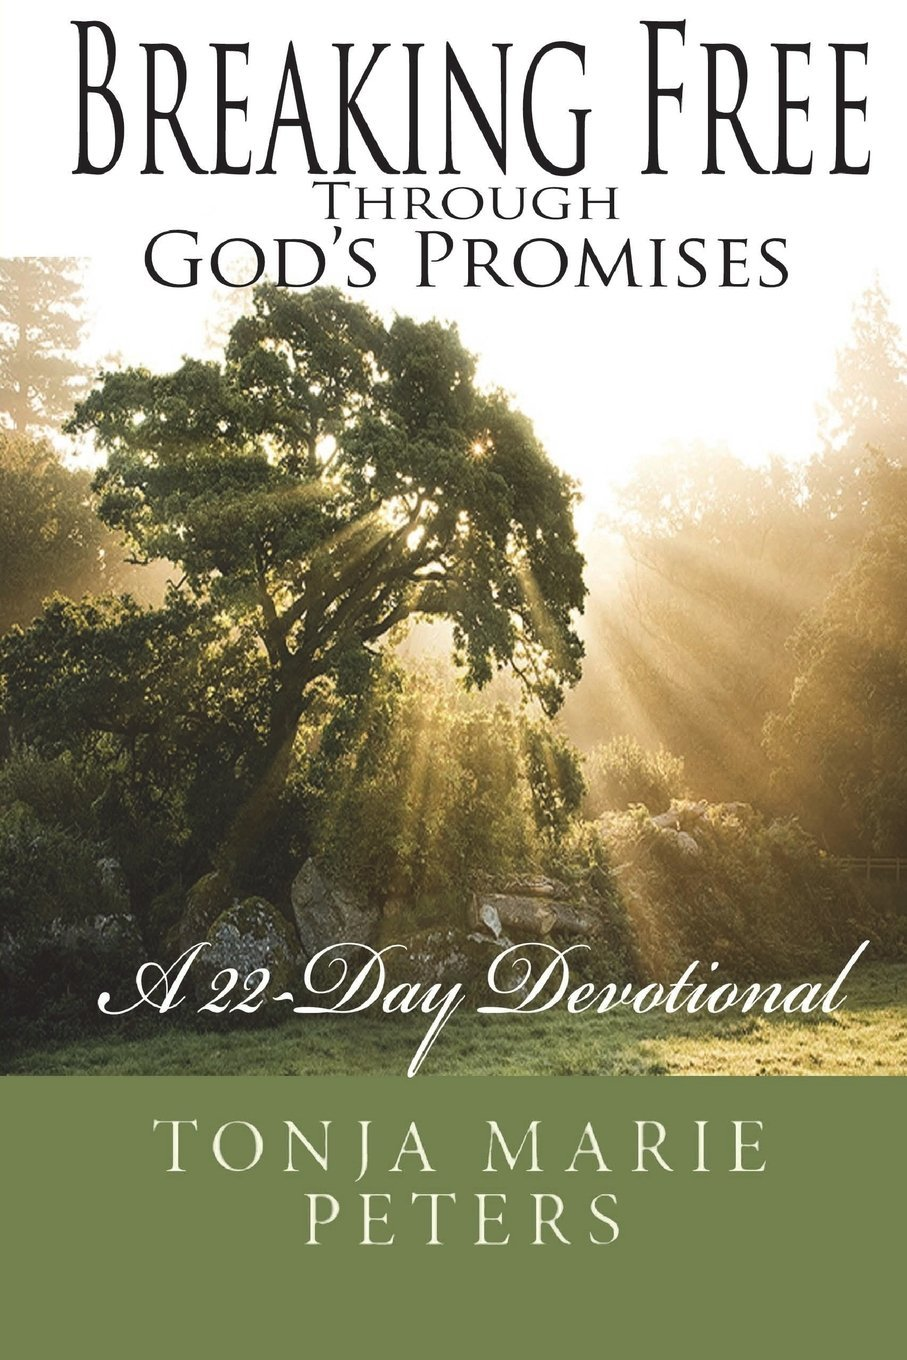 Download Breaking Free Through God's Promises 22-Day Devotional: Breaking Free Through God's Promises 22-Day Devotional pdf epub